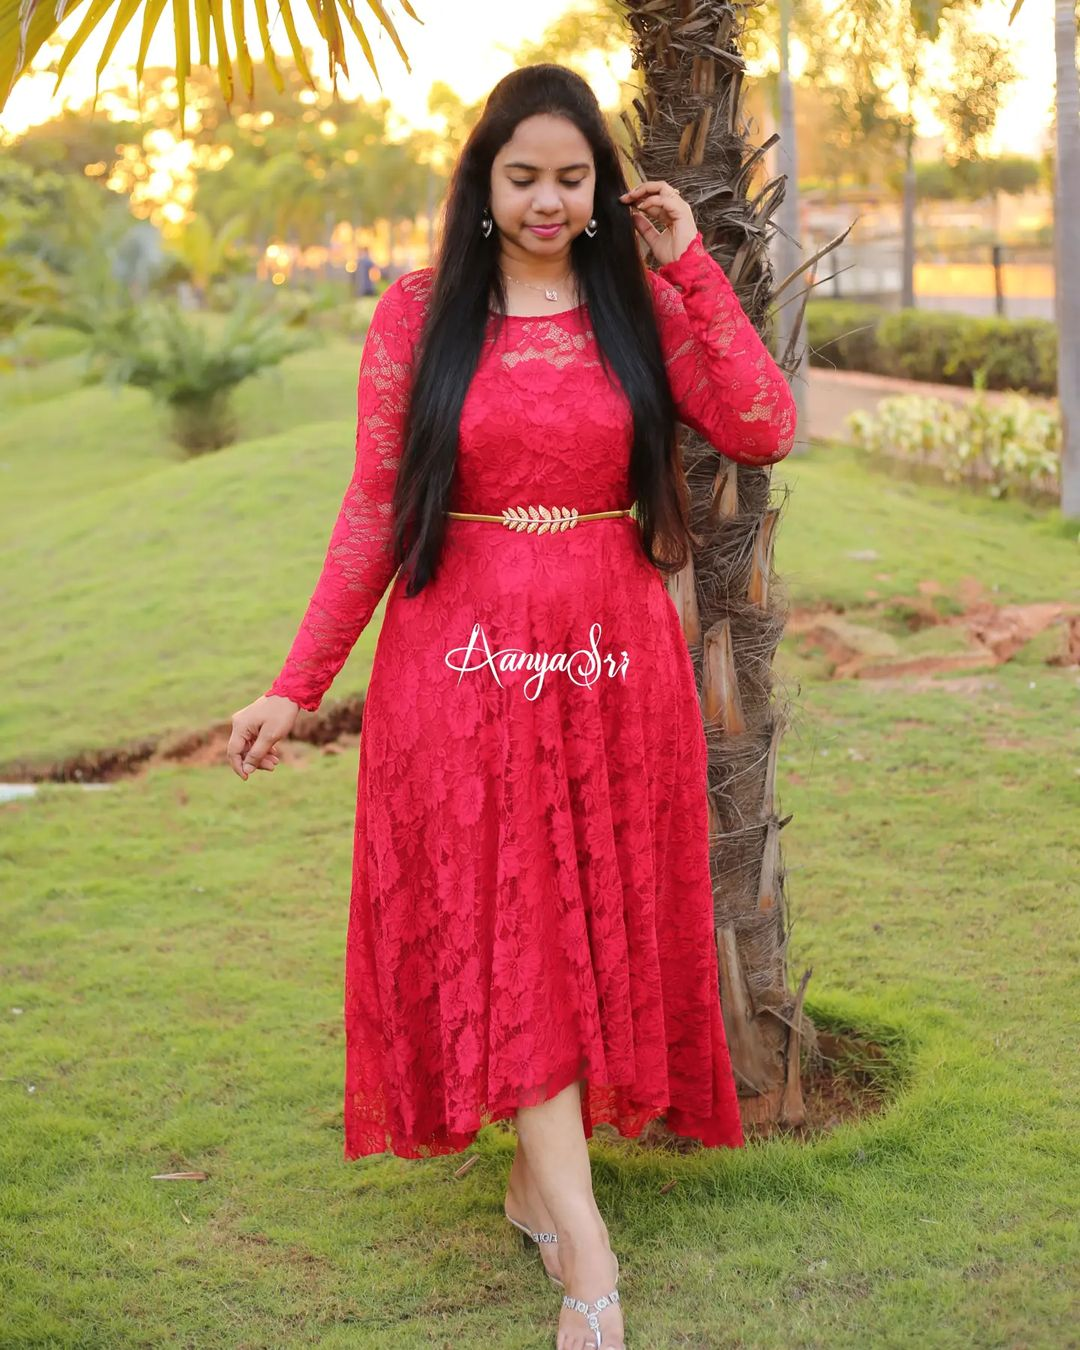 Beautiful red color laced high low dress with sheer yoke and hands .This frock is made of a stretchable high quality lace fabric ! Price : 2600/- 2021-10-02